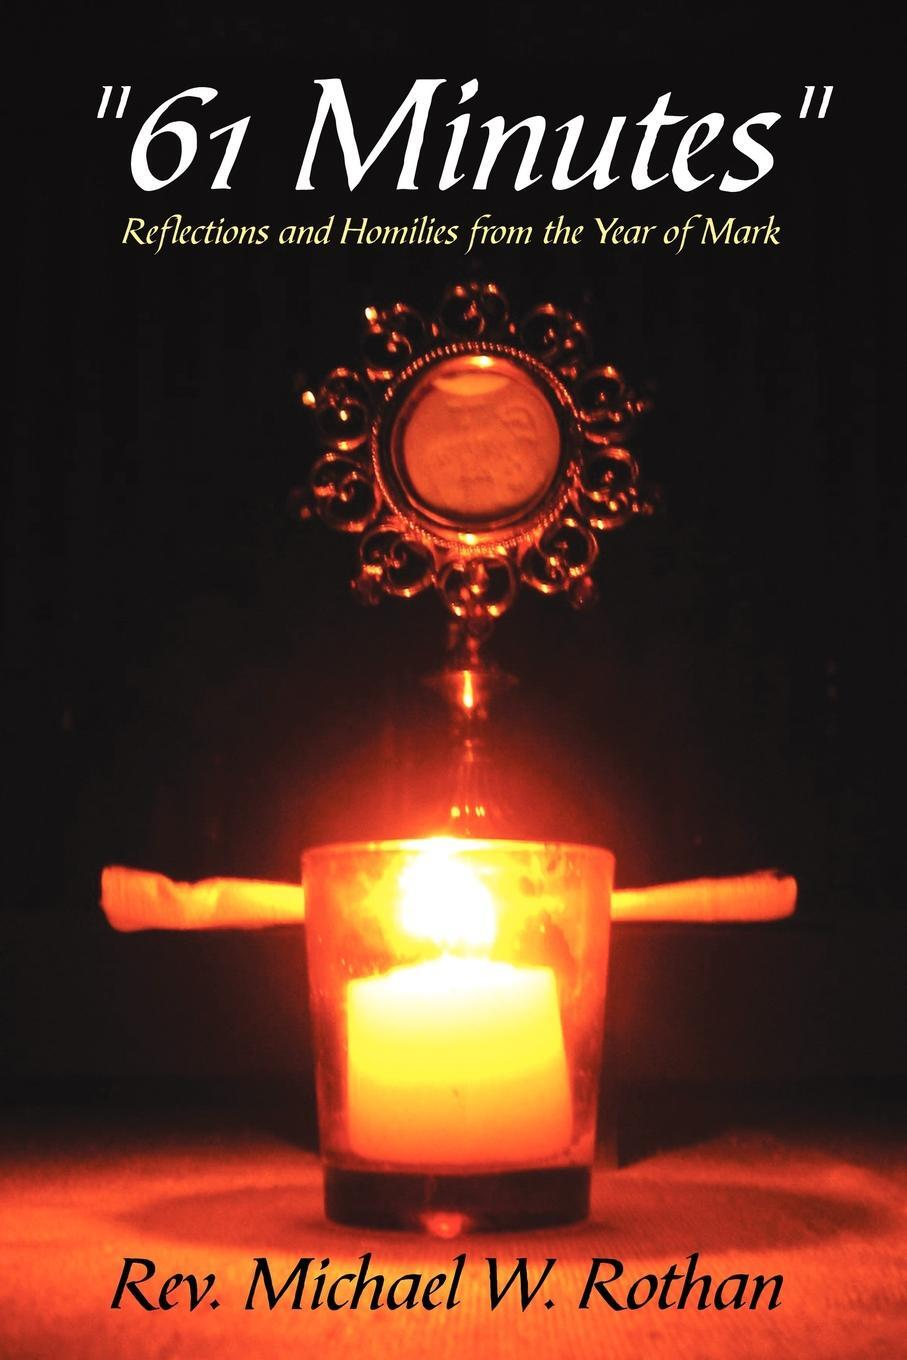 """Rev. Michael W. Rothan. """"61 Minutes"""". Reflections and Homilies from the Year of Mark"""